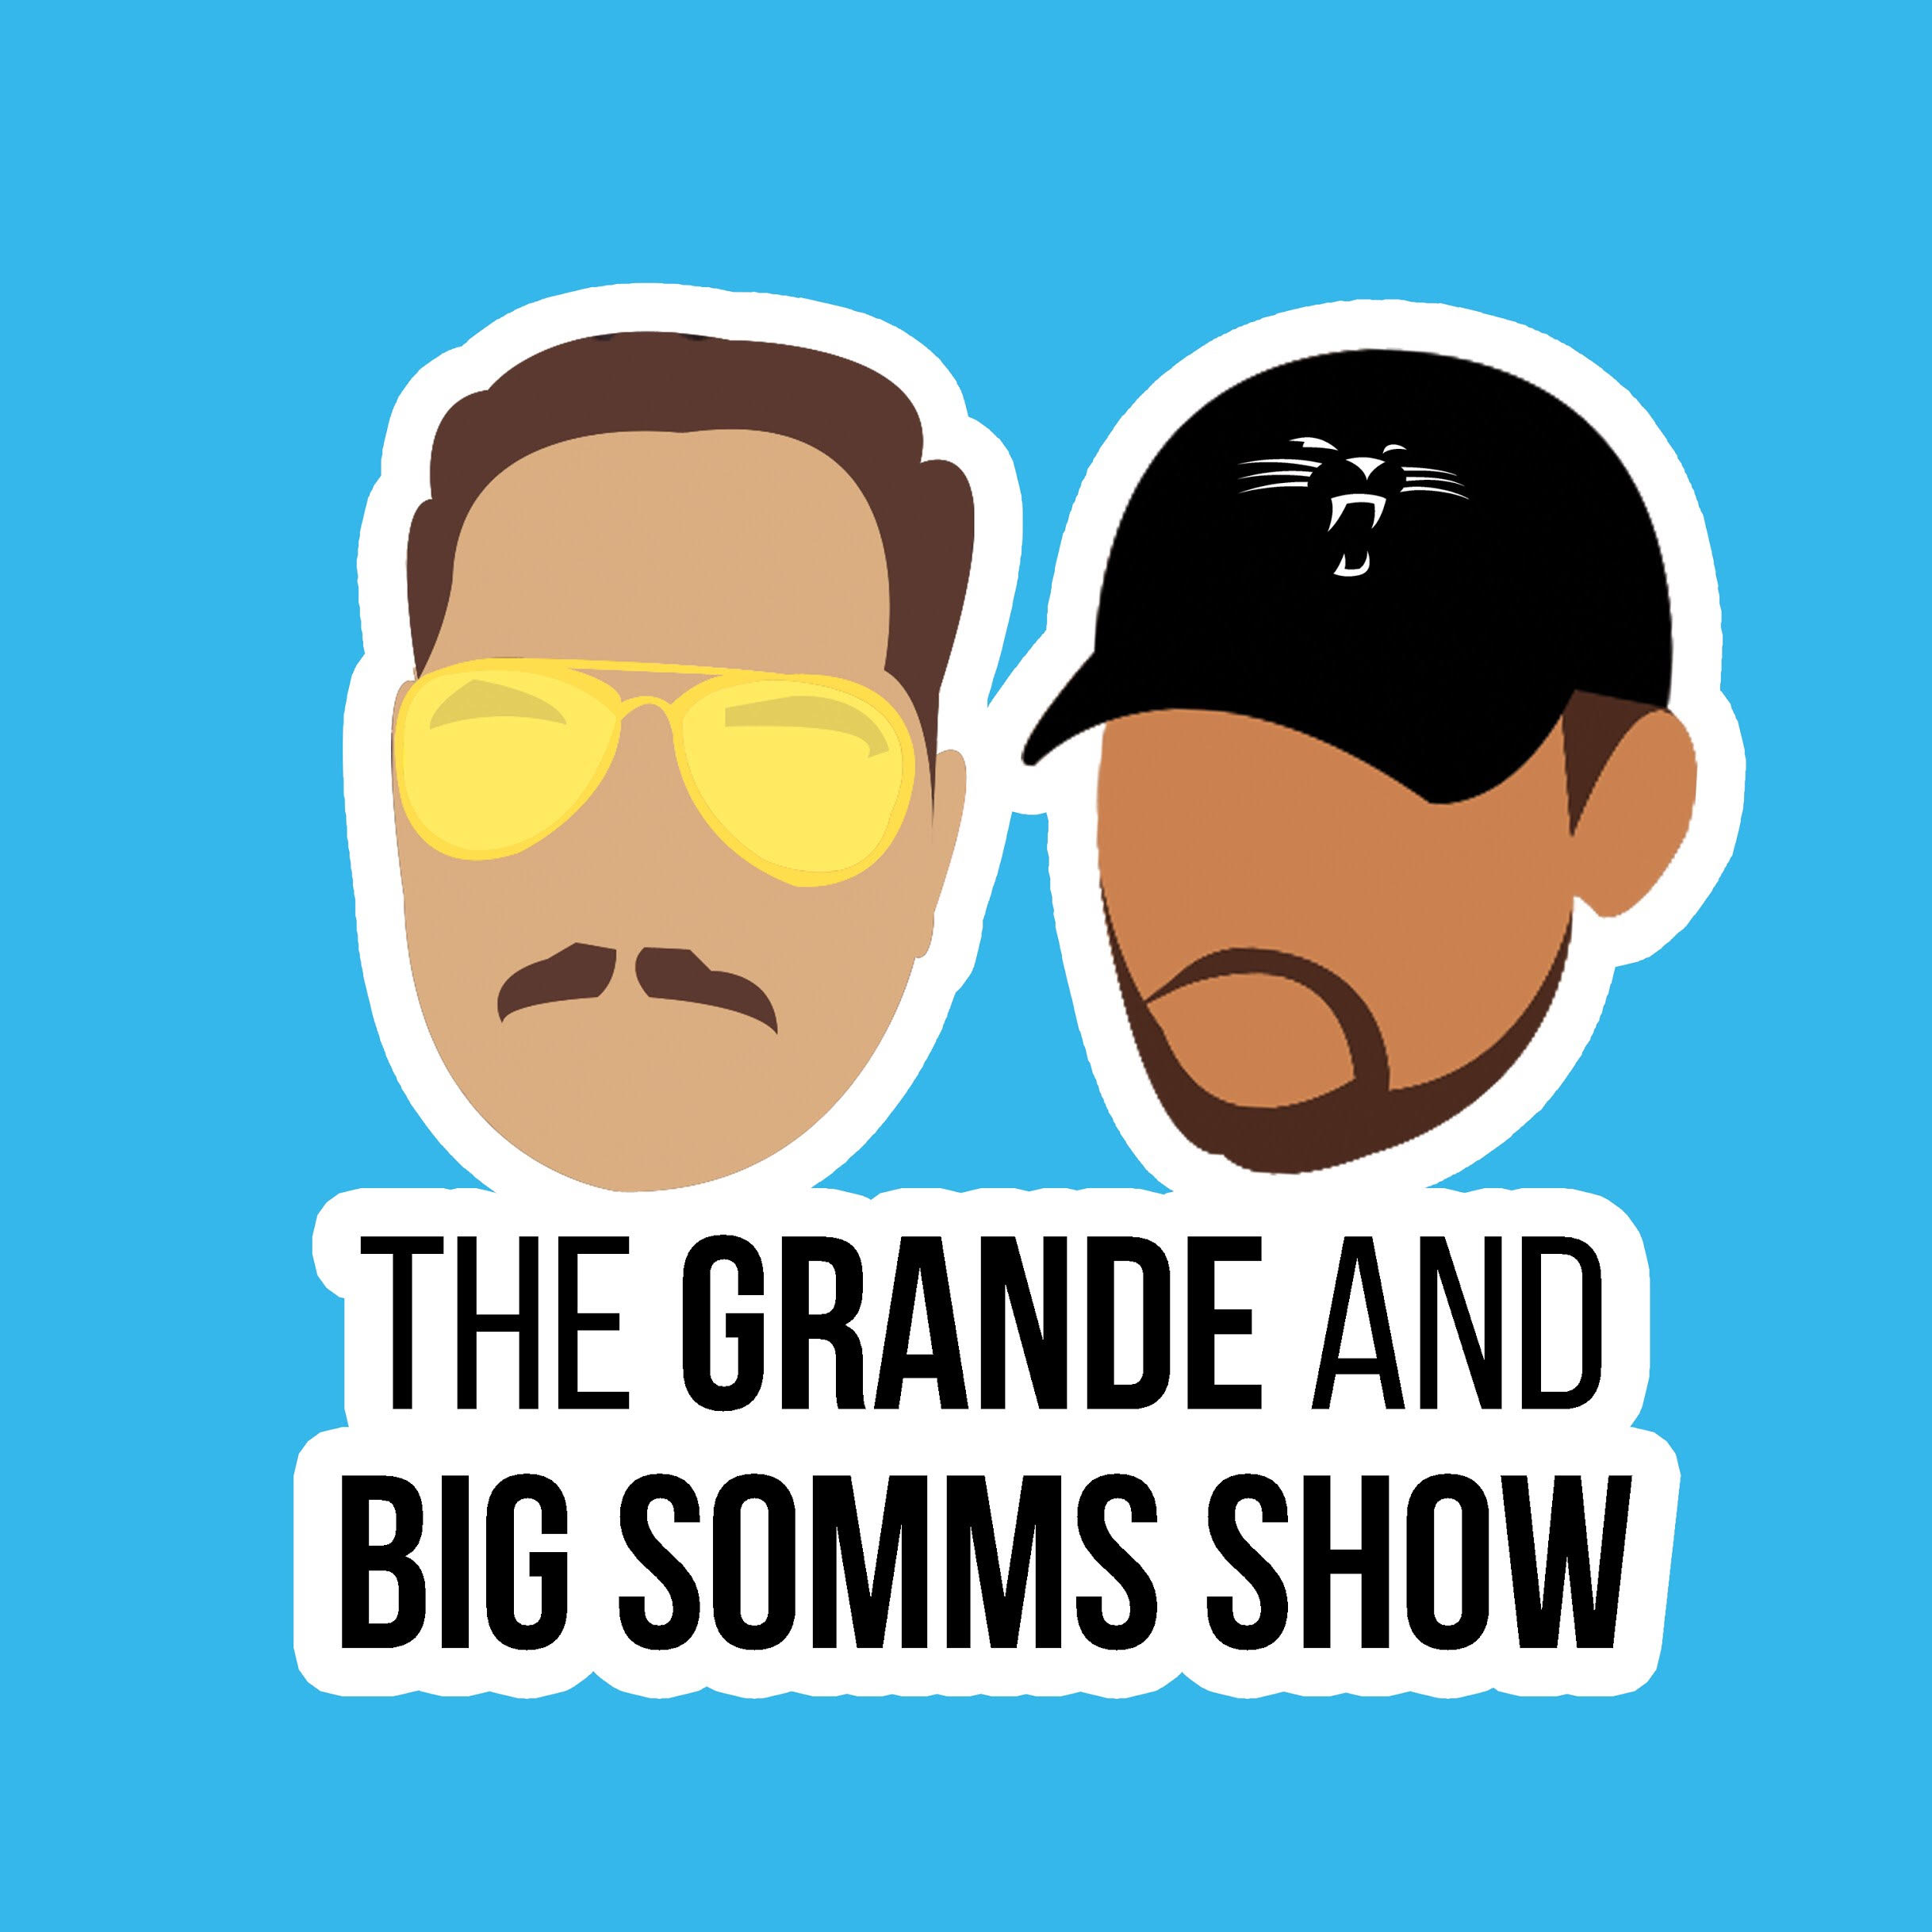 The Grande and Big Somms Show